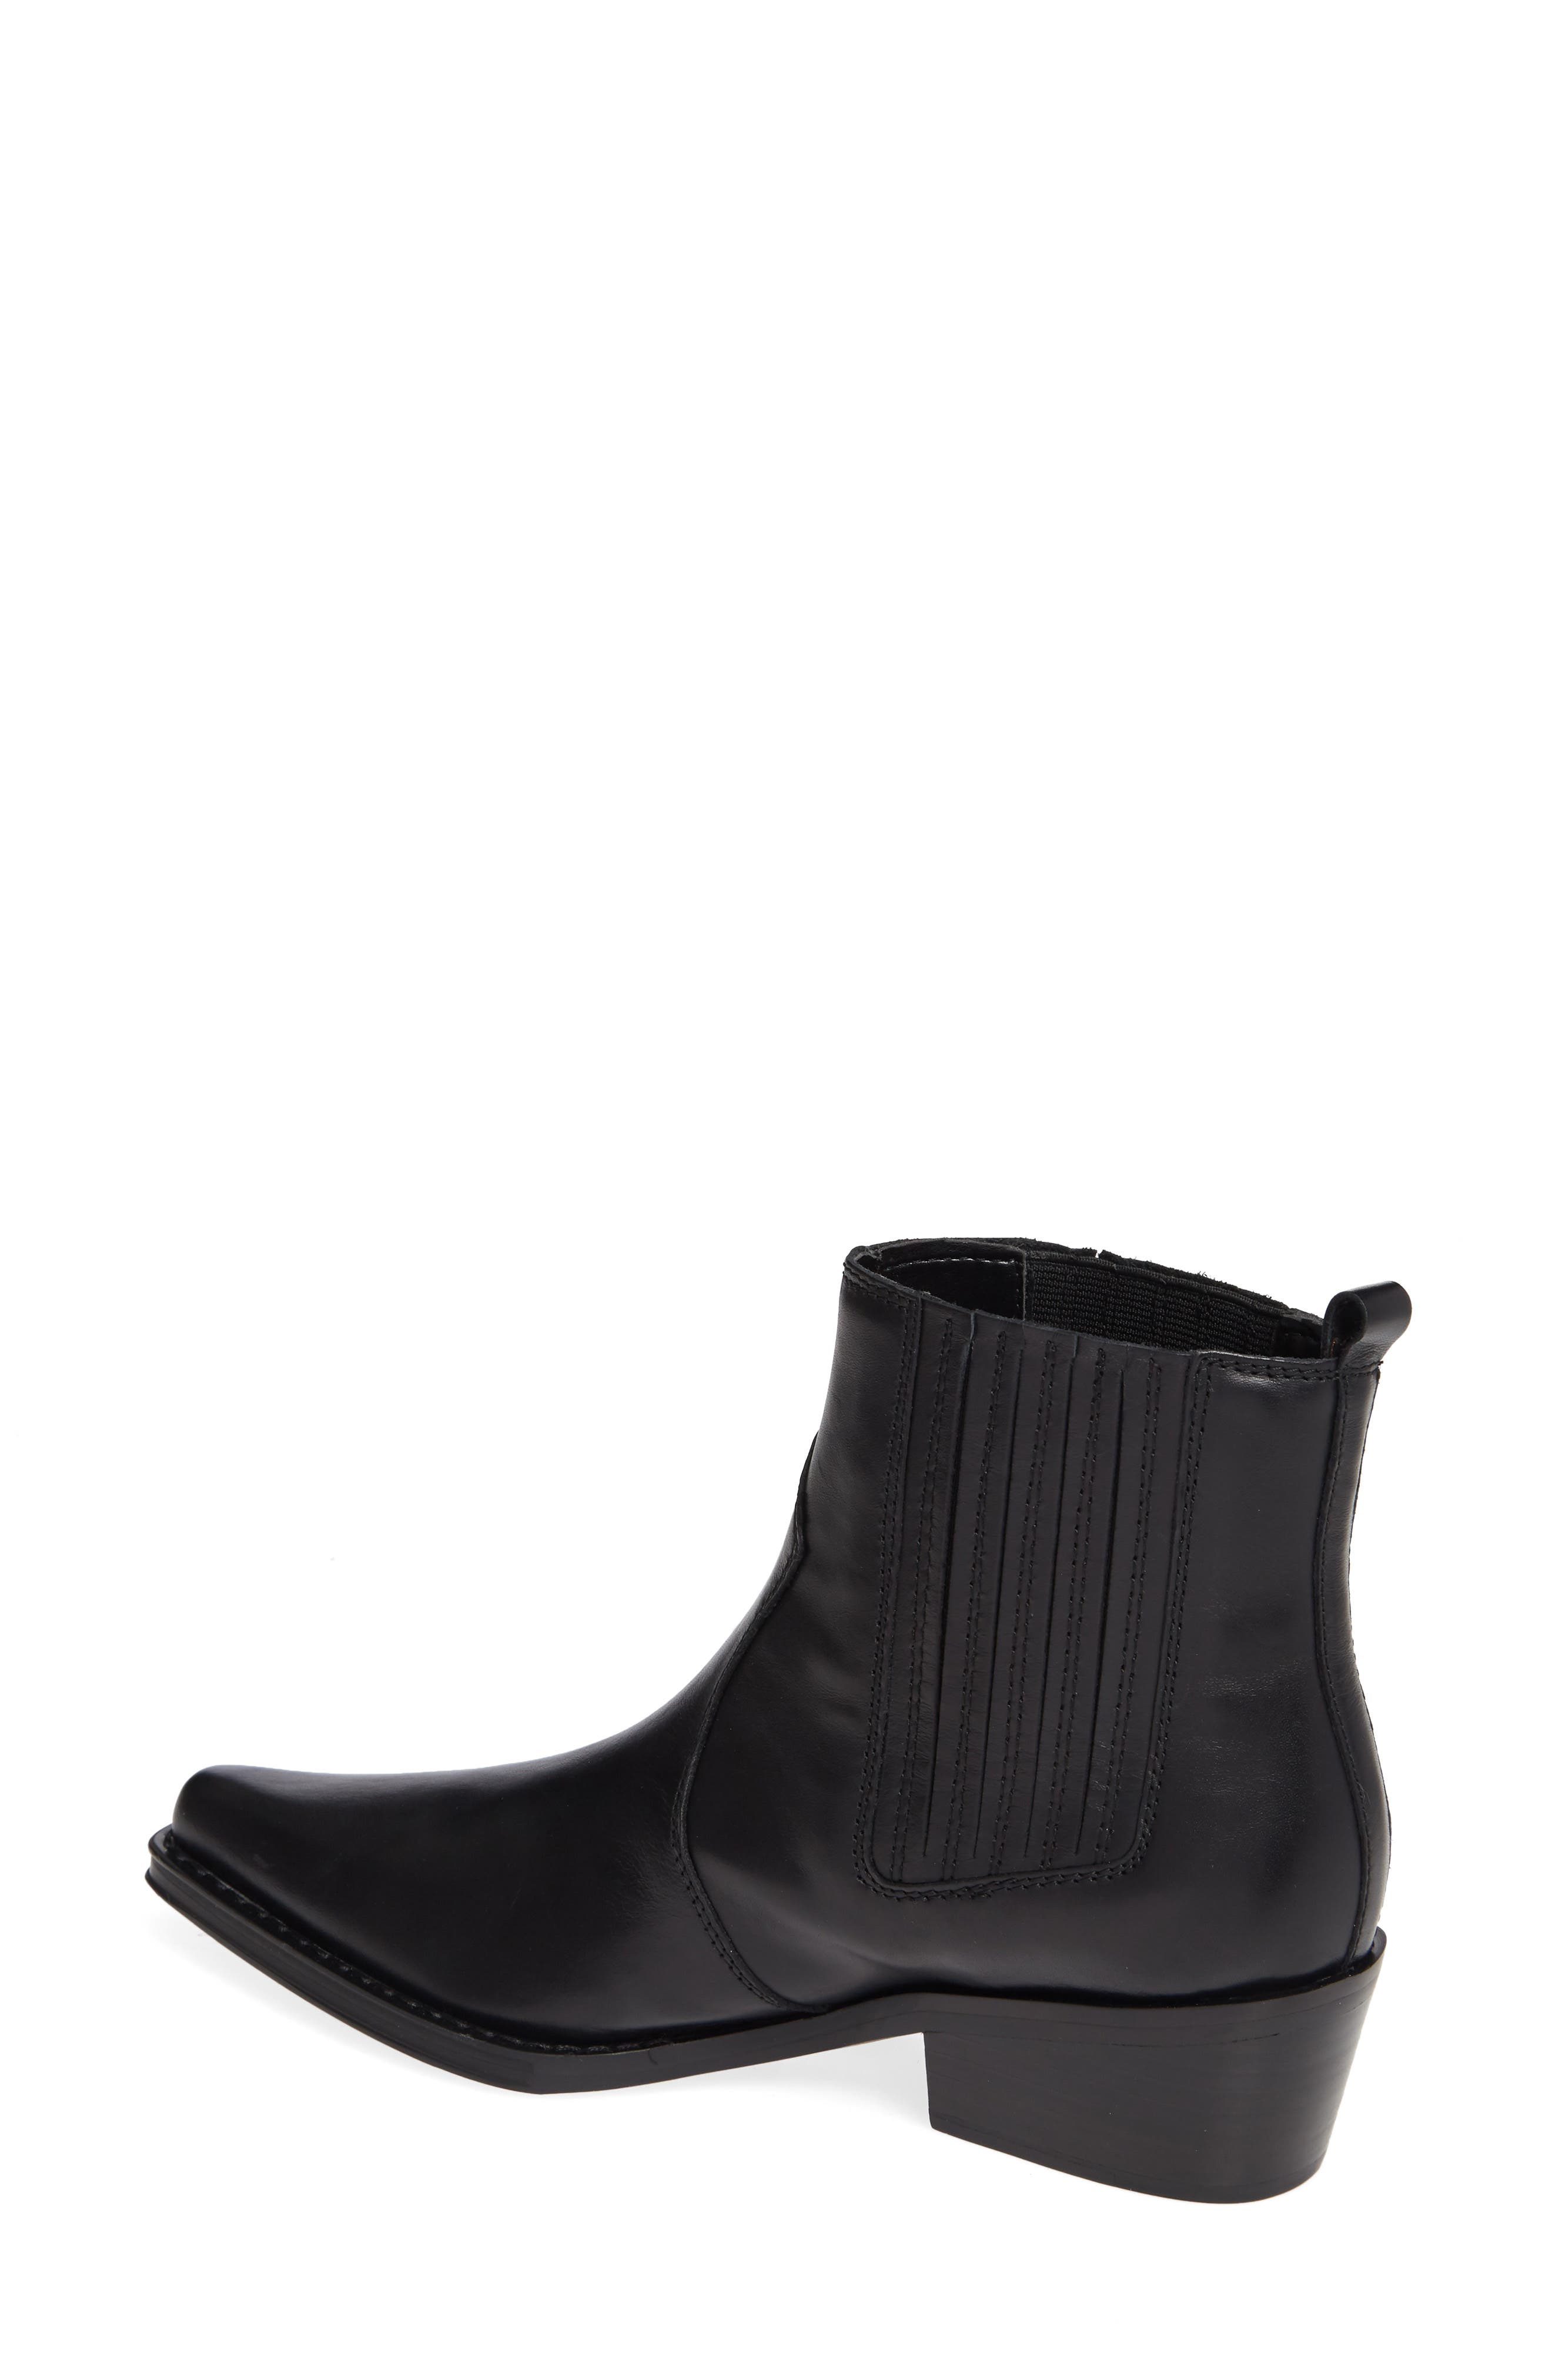 Barbara Bootie,                             Alternate thumbnail 2, color,                             BLACK LEATHER